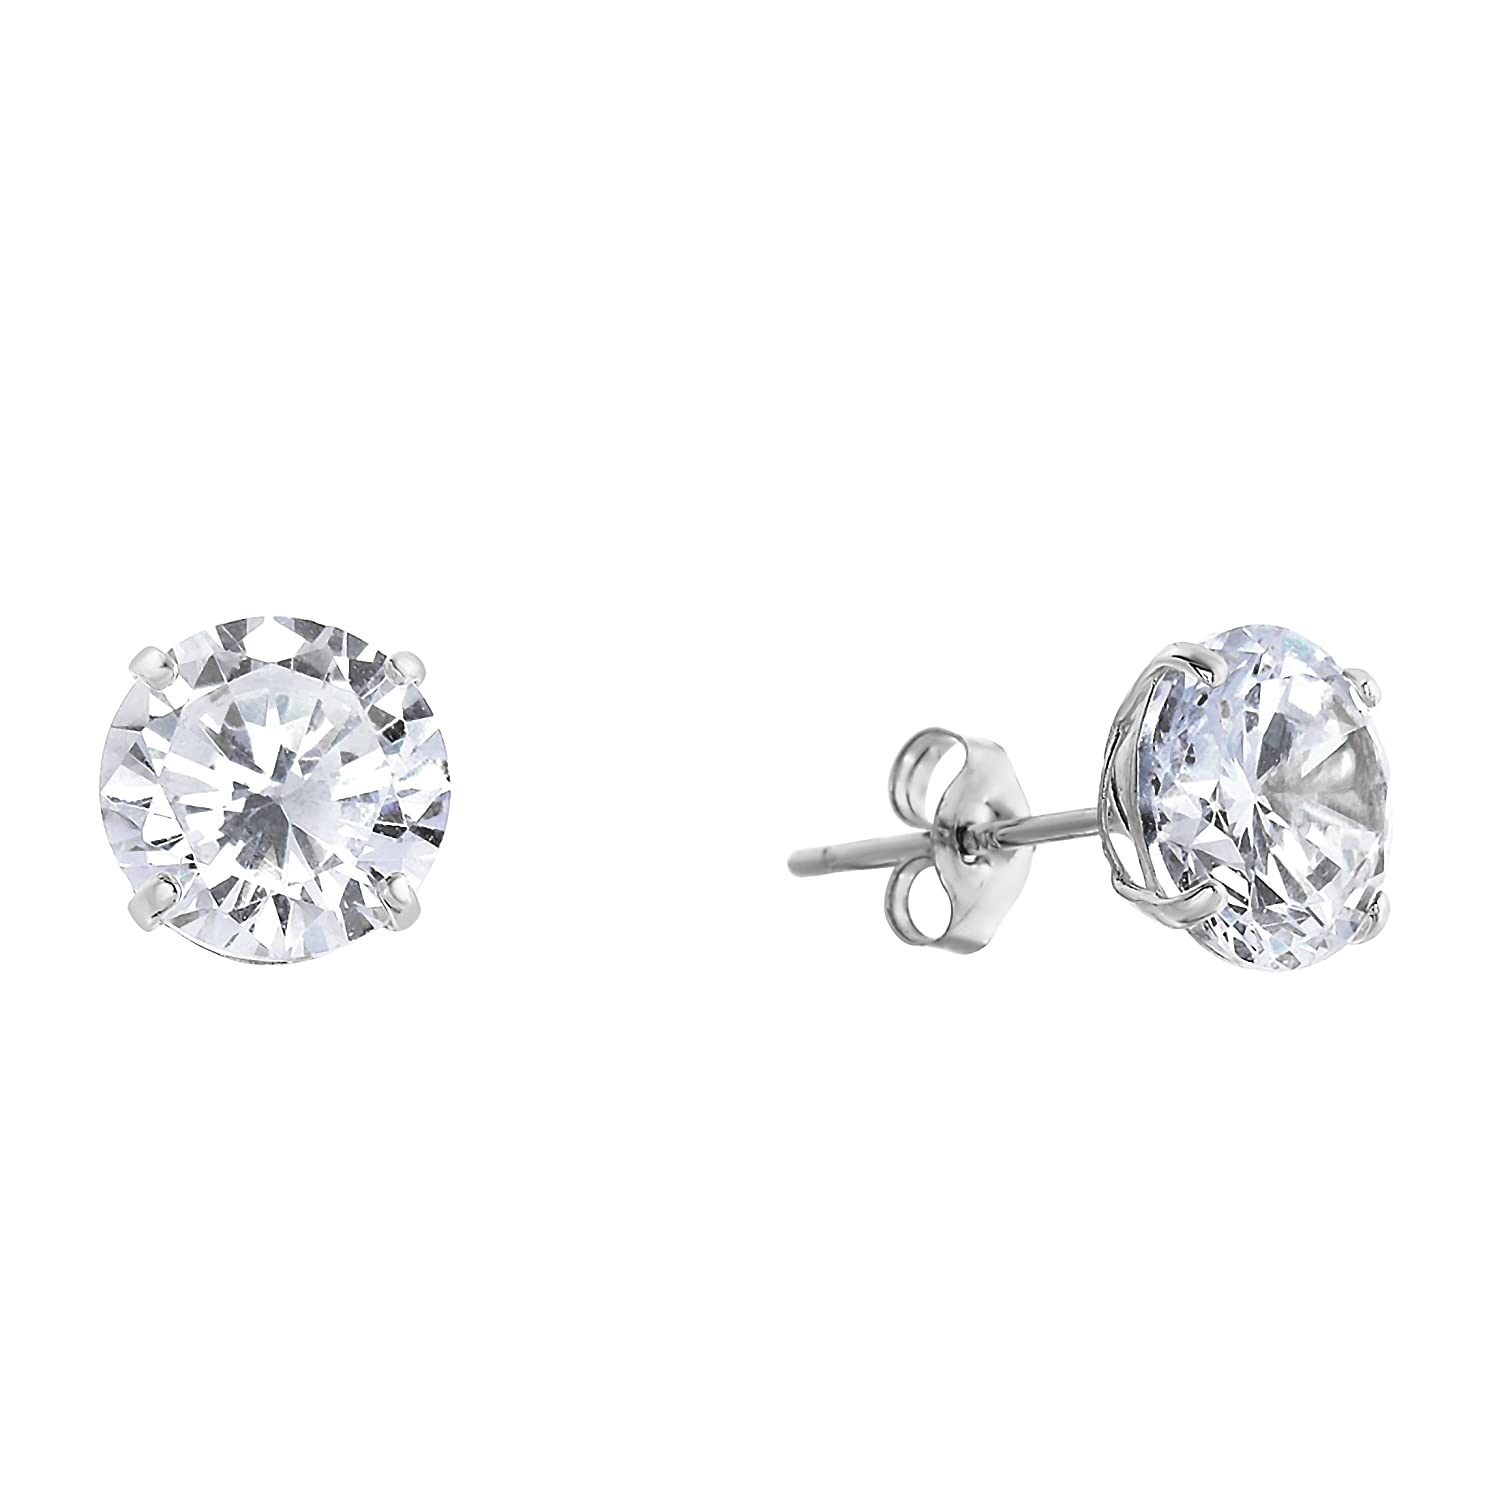 14k White gold Solitaire Round Cubic Zirconia Stud Earrings with gold butterfly Pushbacks (5mm)